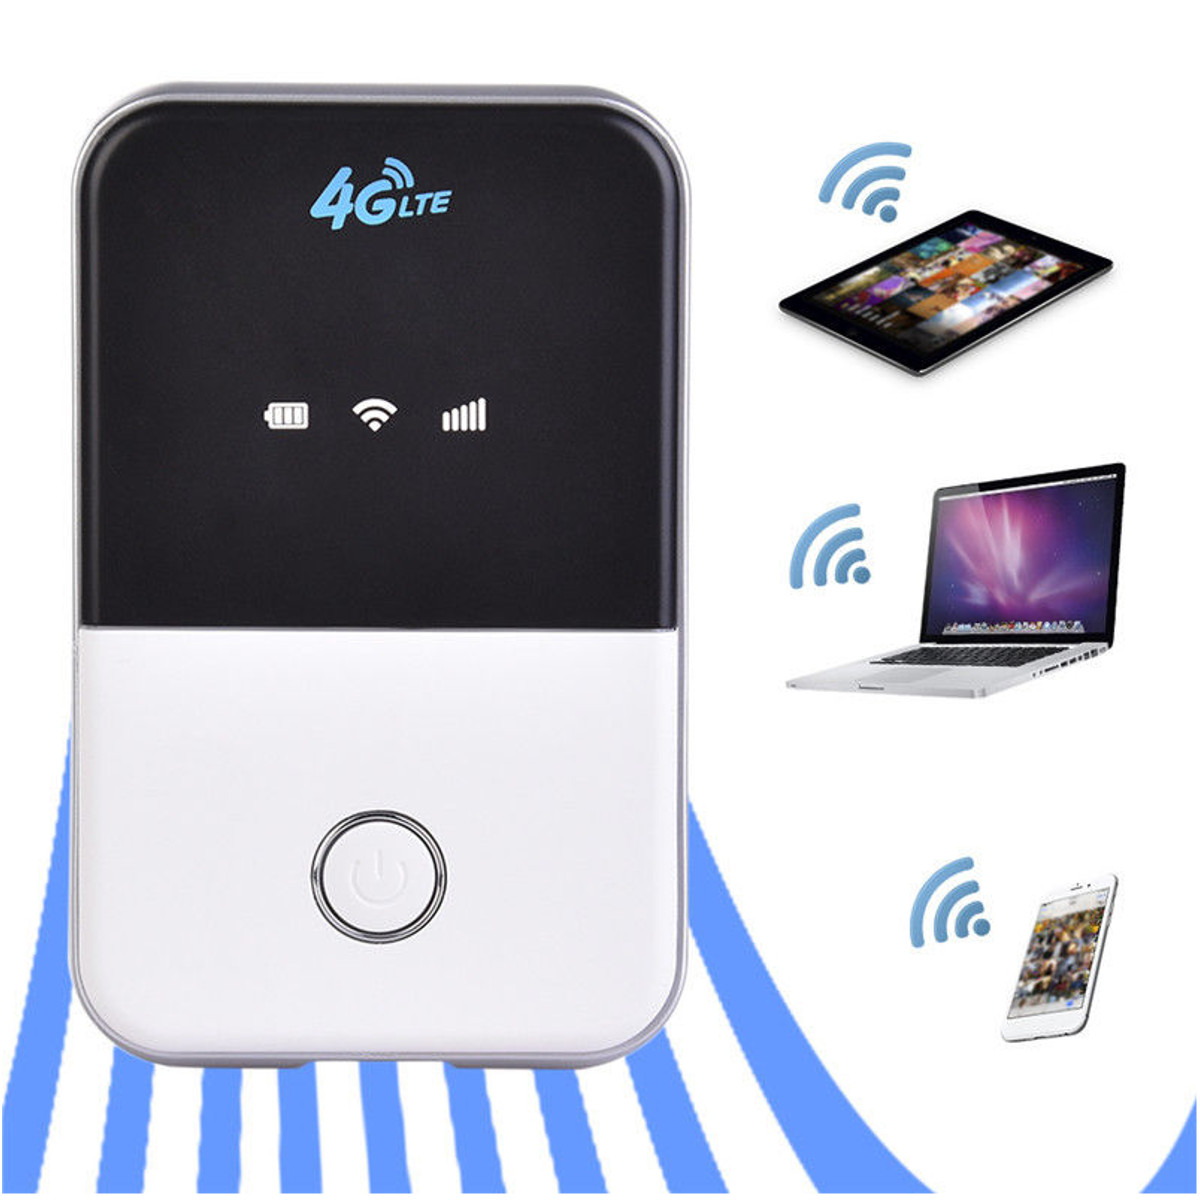 portable 3g 4g router lte 4g wireless router mobile wifi. Black Bedroom Furniture Sets. Home Design Ideas